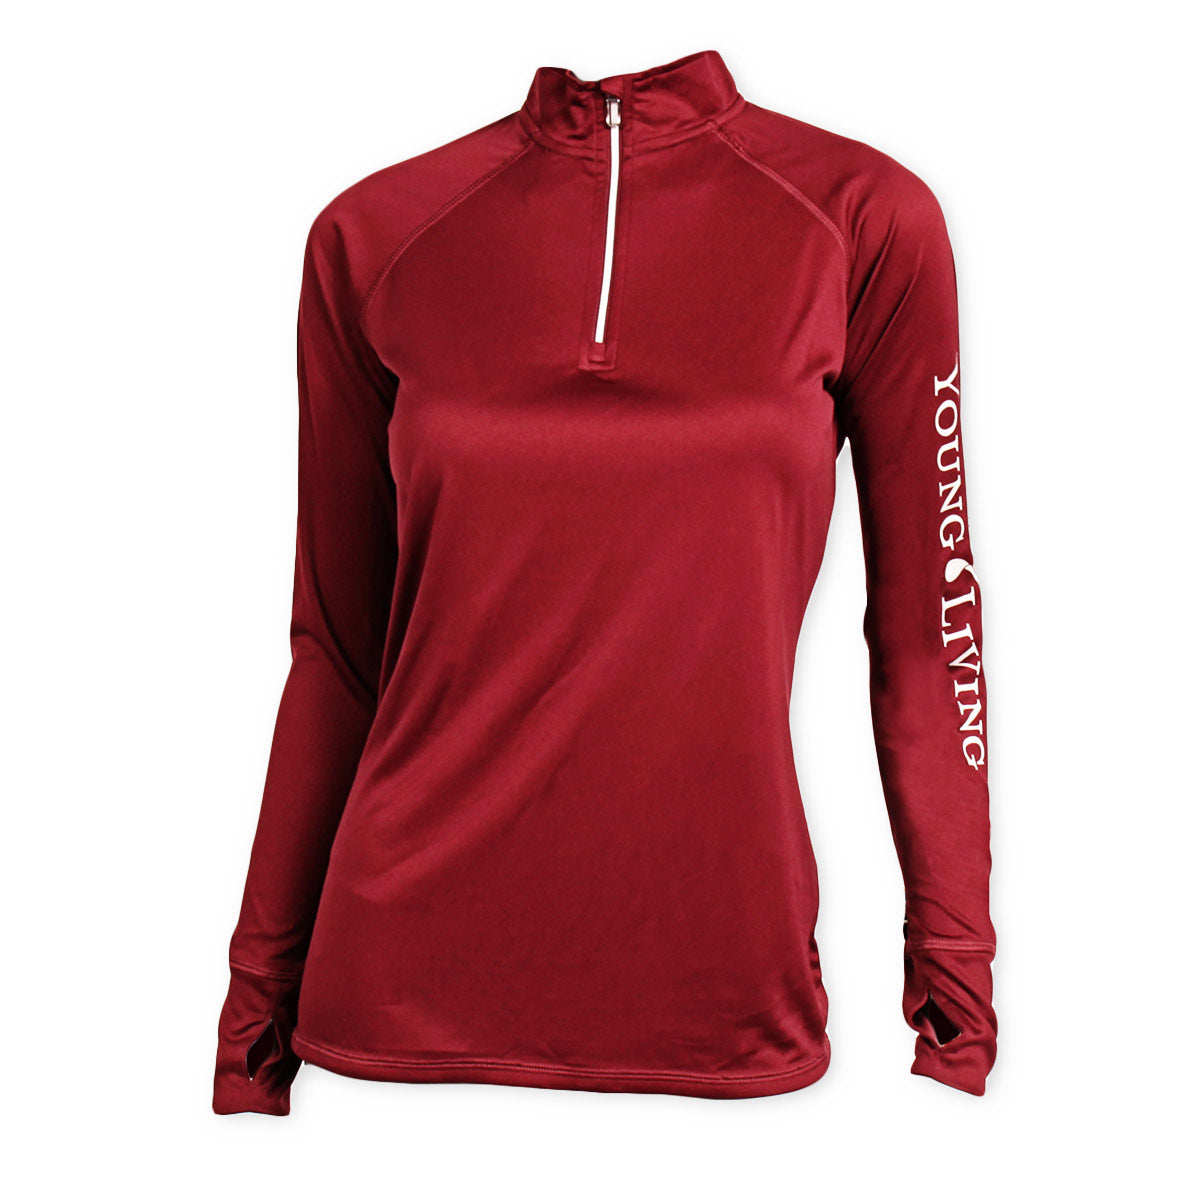 Ladies' Maroon Quarter Zip